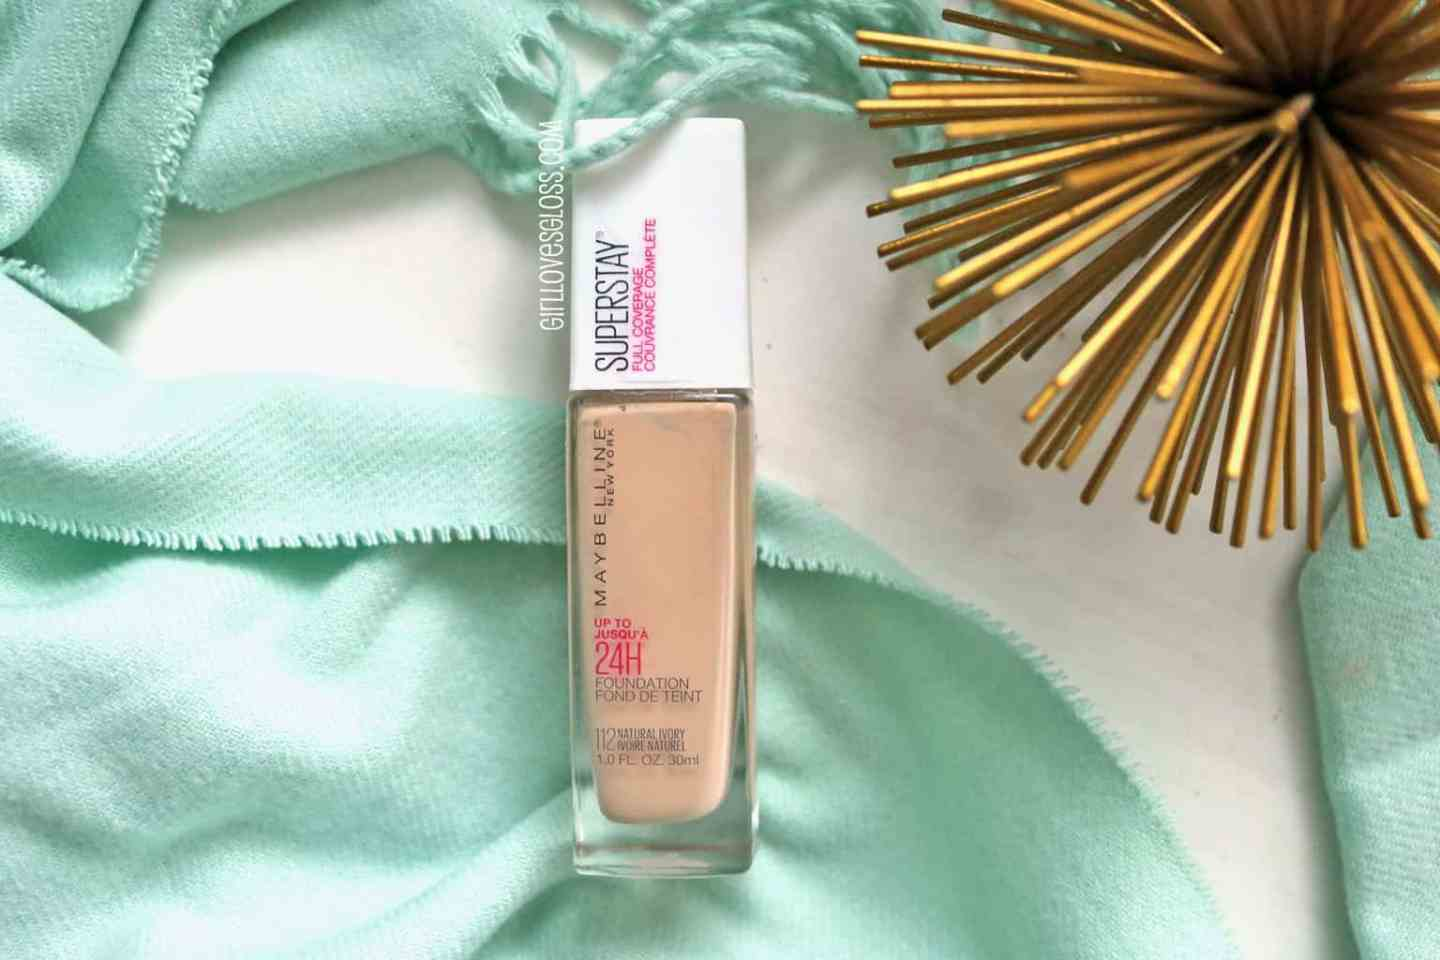 Maybelline Superstay Full Coverage Foundation Review